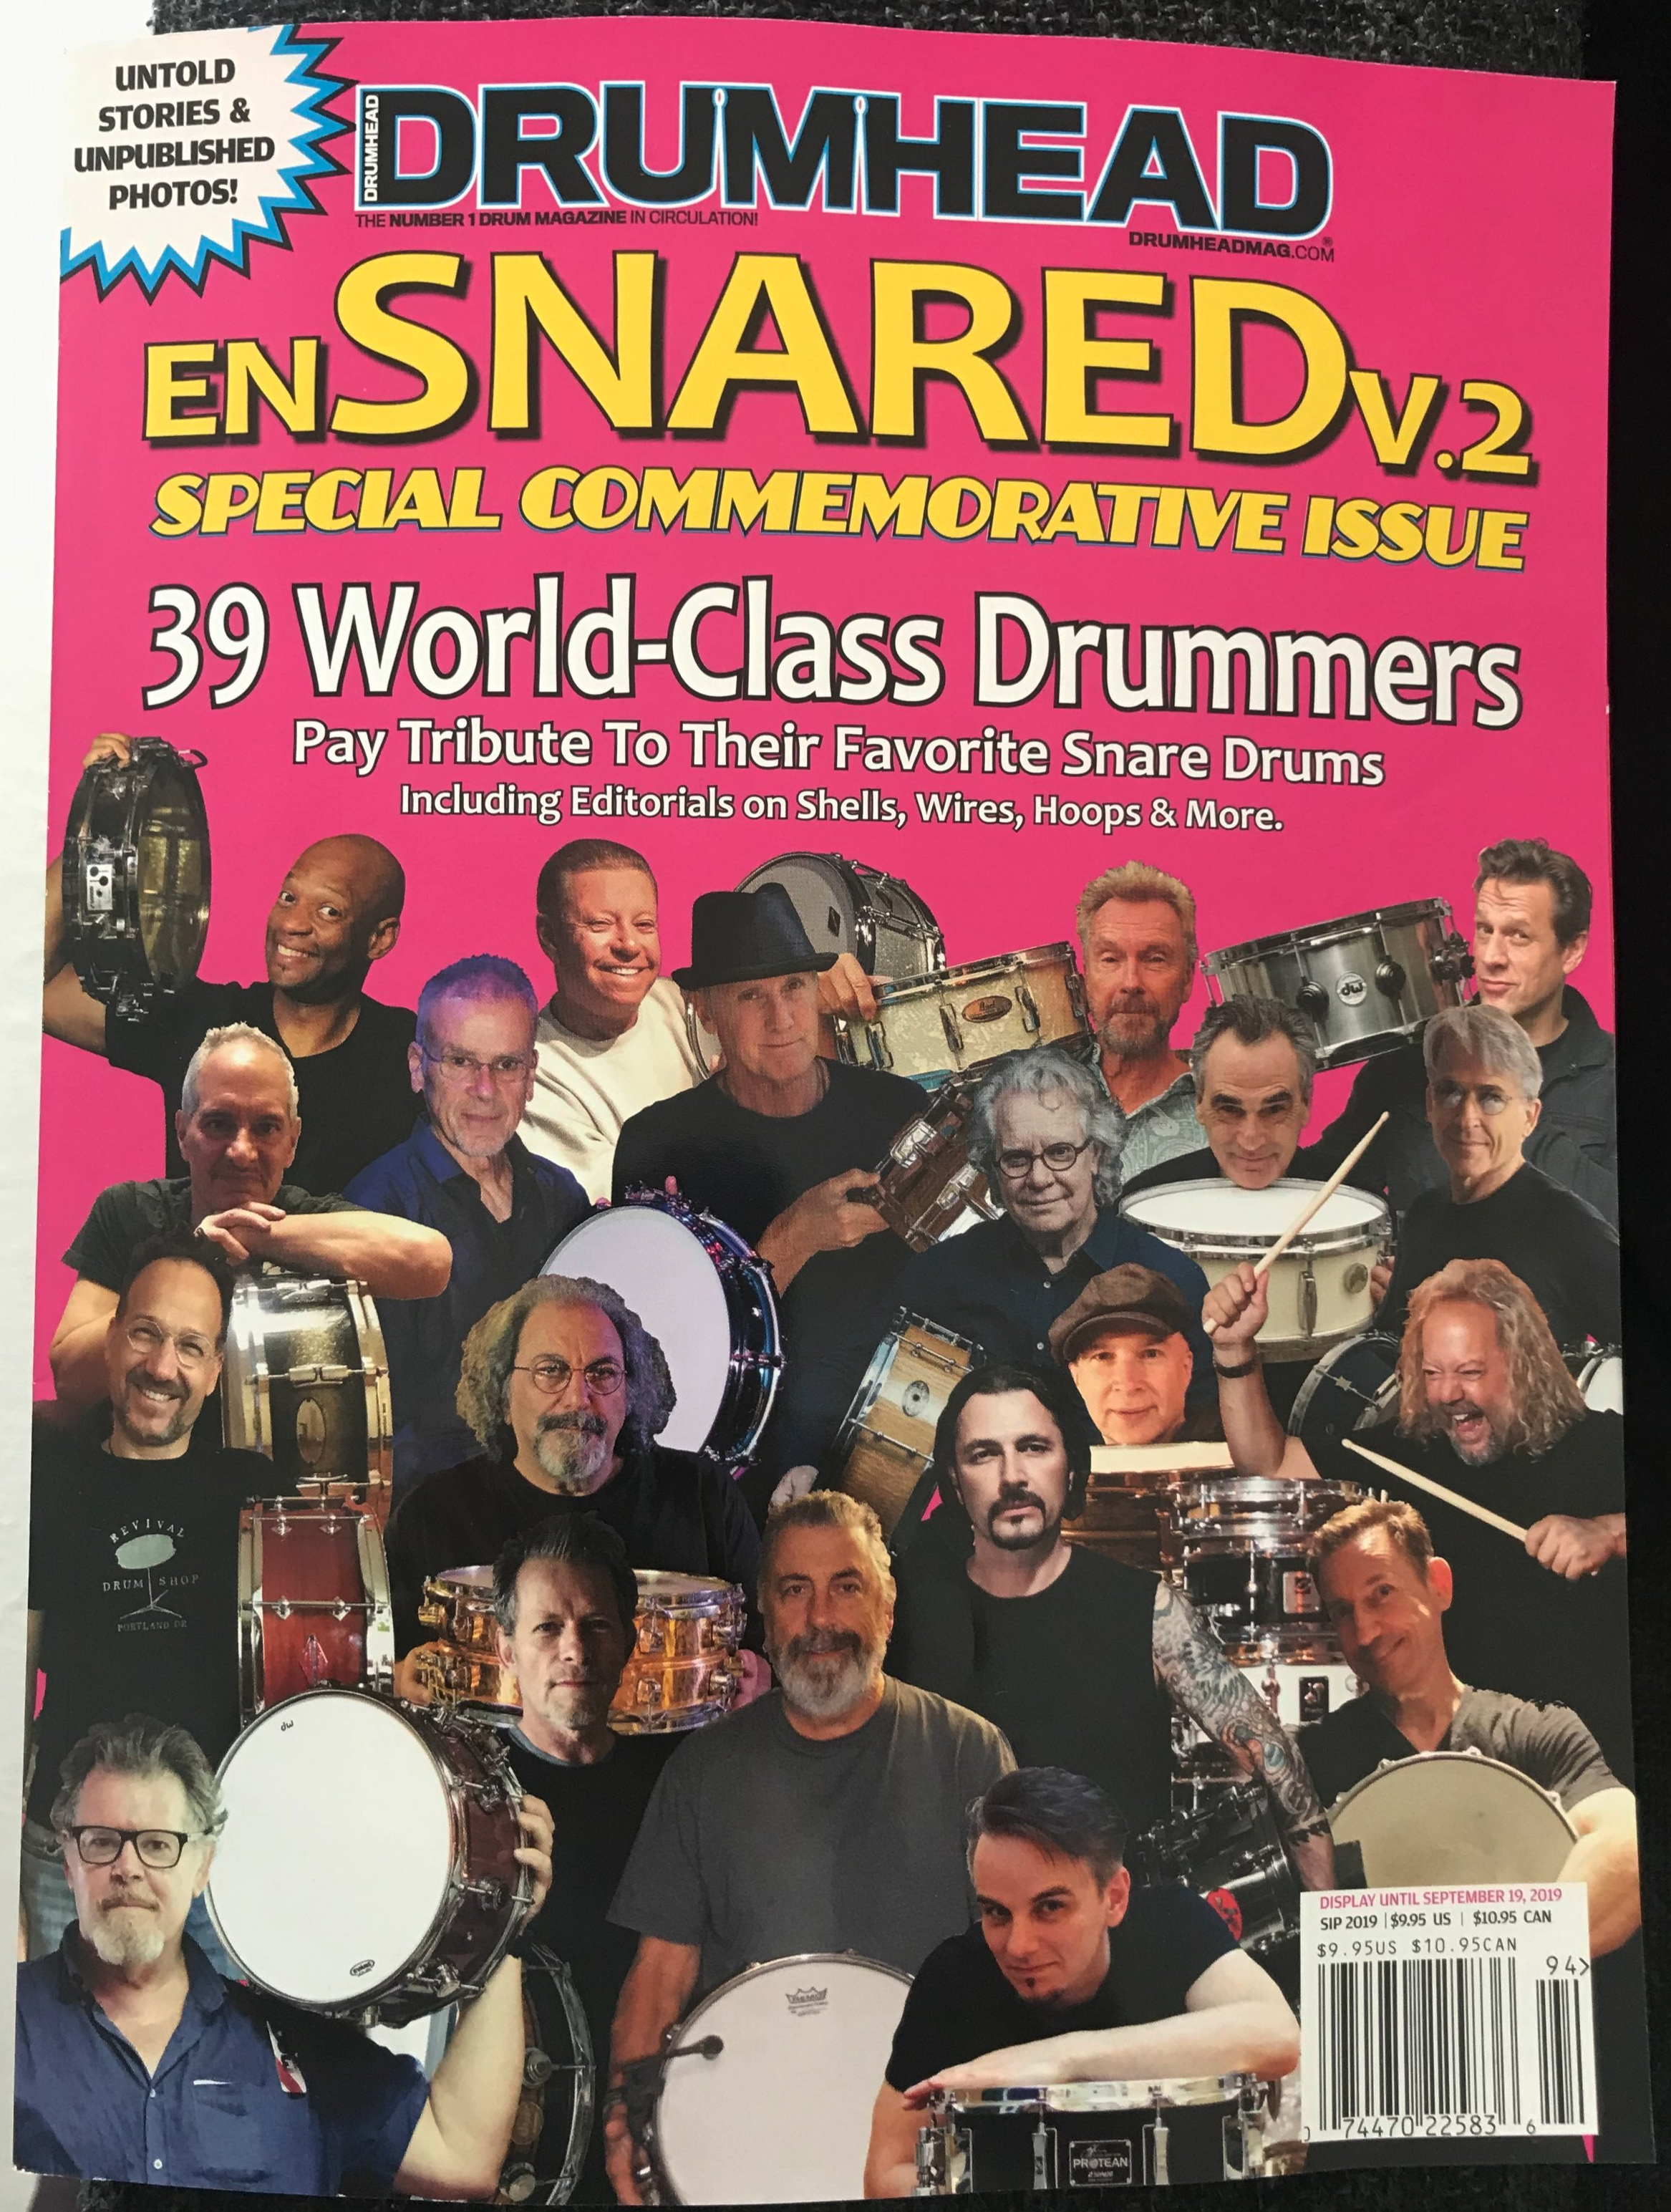 DRUMHEAD MAGAZINE ENSNARED VOL 2 COVER 2019